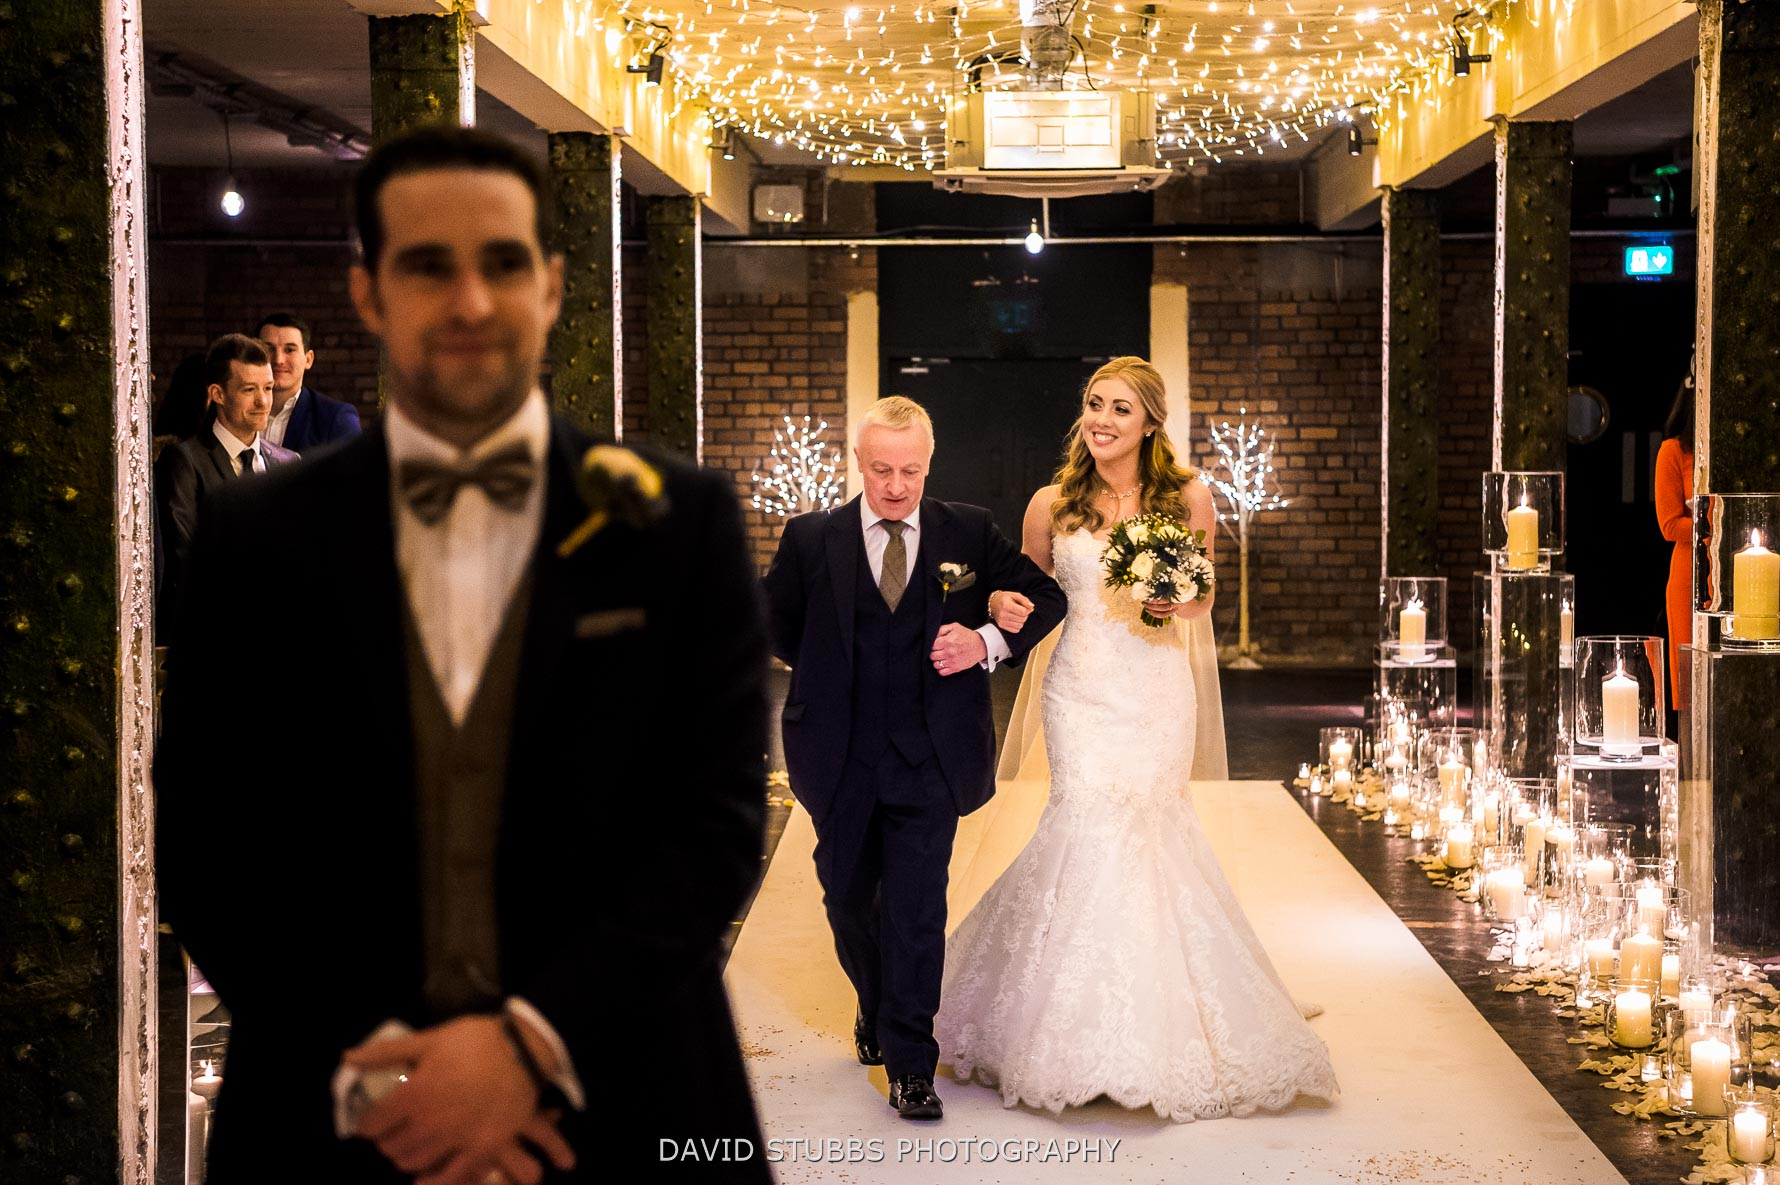 walking down the isle to be married